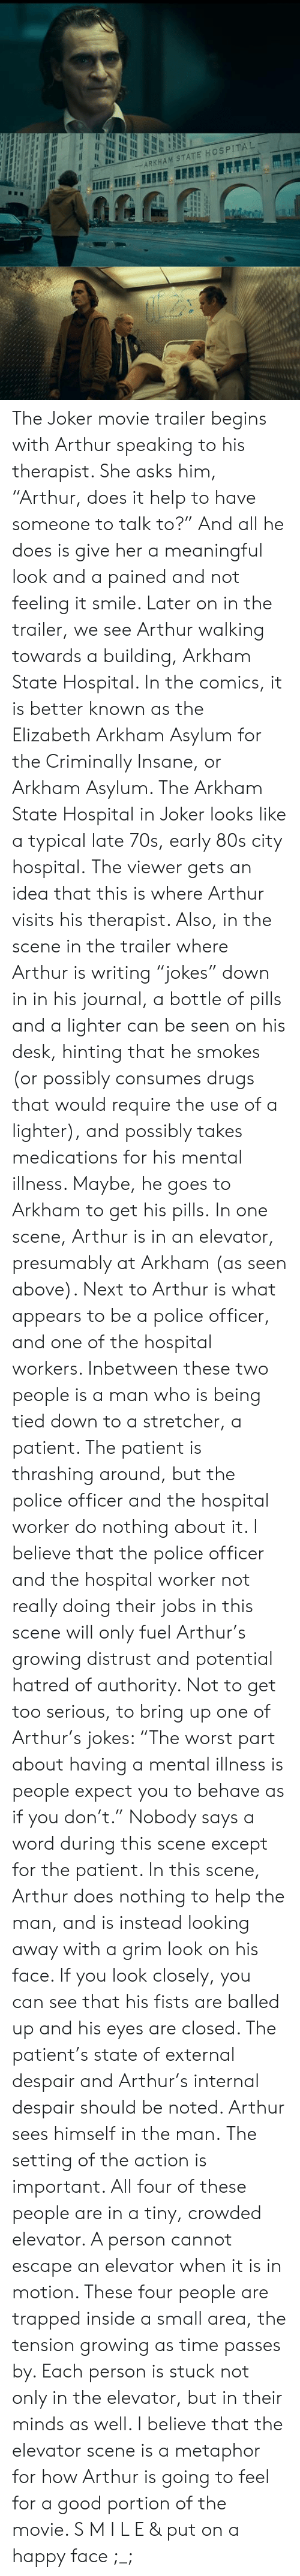 """80s, Arthur, and Drugs: -ARKHAM STATE HOSPITAL The Joker movie trailer begins with Arthur speaking to his therapist. She asks him, """"Arthur, does it help to have someone to talk to?"""" And all he does is give her a meaningful look and a pained and not feeling it smile.   Later on in the trailer, we see Arthur walking towards a building, Arkham State Hospital. In the comics, it is better known as the Elizabeth Arkham Asylum for the Criminally Insane, or Arkham Asylum. The Arkham State Hospital in Joker  looks like a typical late 70s, early 80s city hospital.  The viewer gets an idea that this is where Arthur visits his therapist. Also, in the scene in the trailer where Arthur is writing """"jokes"""" down in in his journal, a bottle of pills and a lighter can be seen on his desk, hinting that he smokes (or possibly consumes drugs that would require the use of a lighter), and possibly takes medications for his mental illness. Maybe, he goes to Arkham to get his pills.  In one scene, Arthur is in an elevator, presumably at Arkham (as seen above). Next to Arthur is what appears to be a police officer, and one of the hospital workers. Inbetween these two people is a man who is being tied down to a stretcher, a patient. The patient is thrashing around, but the police officer and the hospital worker do nothing about it. I believe that the police officer and the hospital worker not really doing their jobs in this scene will only fuel Arthur's growing distrust and potential hatred of authority. Not to get too serious, to bring up one of Arthur's jokes: """"The worst part about having a mental illness is people expect you to behave as if you don't.""""  Nobody says a word during this scene except for the patient.   In this scene, Arthur does nothing to help the man, and is instead looking away with a grim look on his face. If you look closely, you can see that his fists are balled up and his eyes are closed. The patient's state of external despair and Arthur's internal despair should be not"""